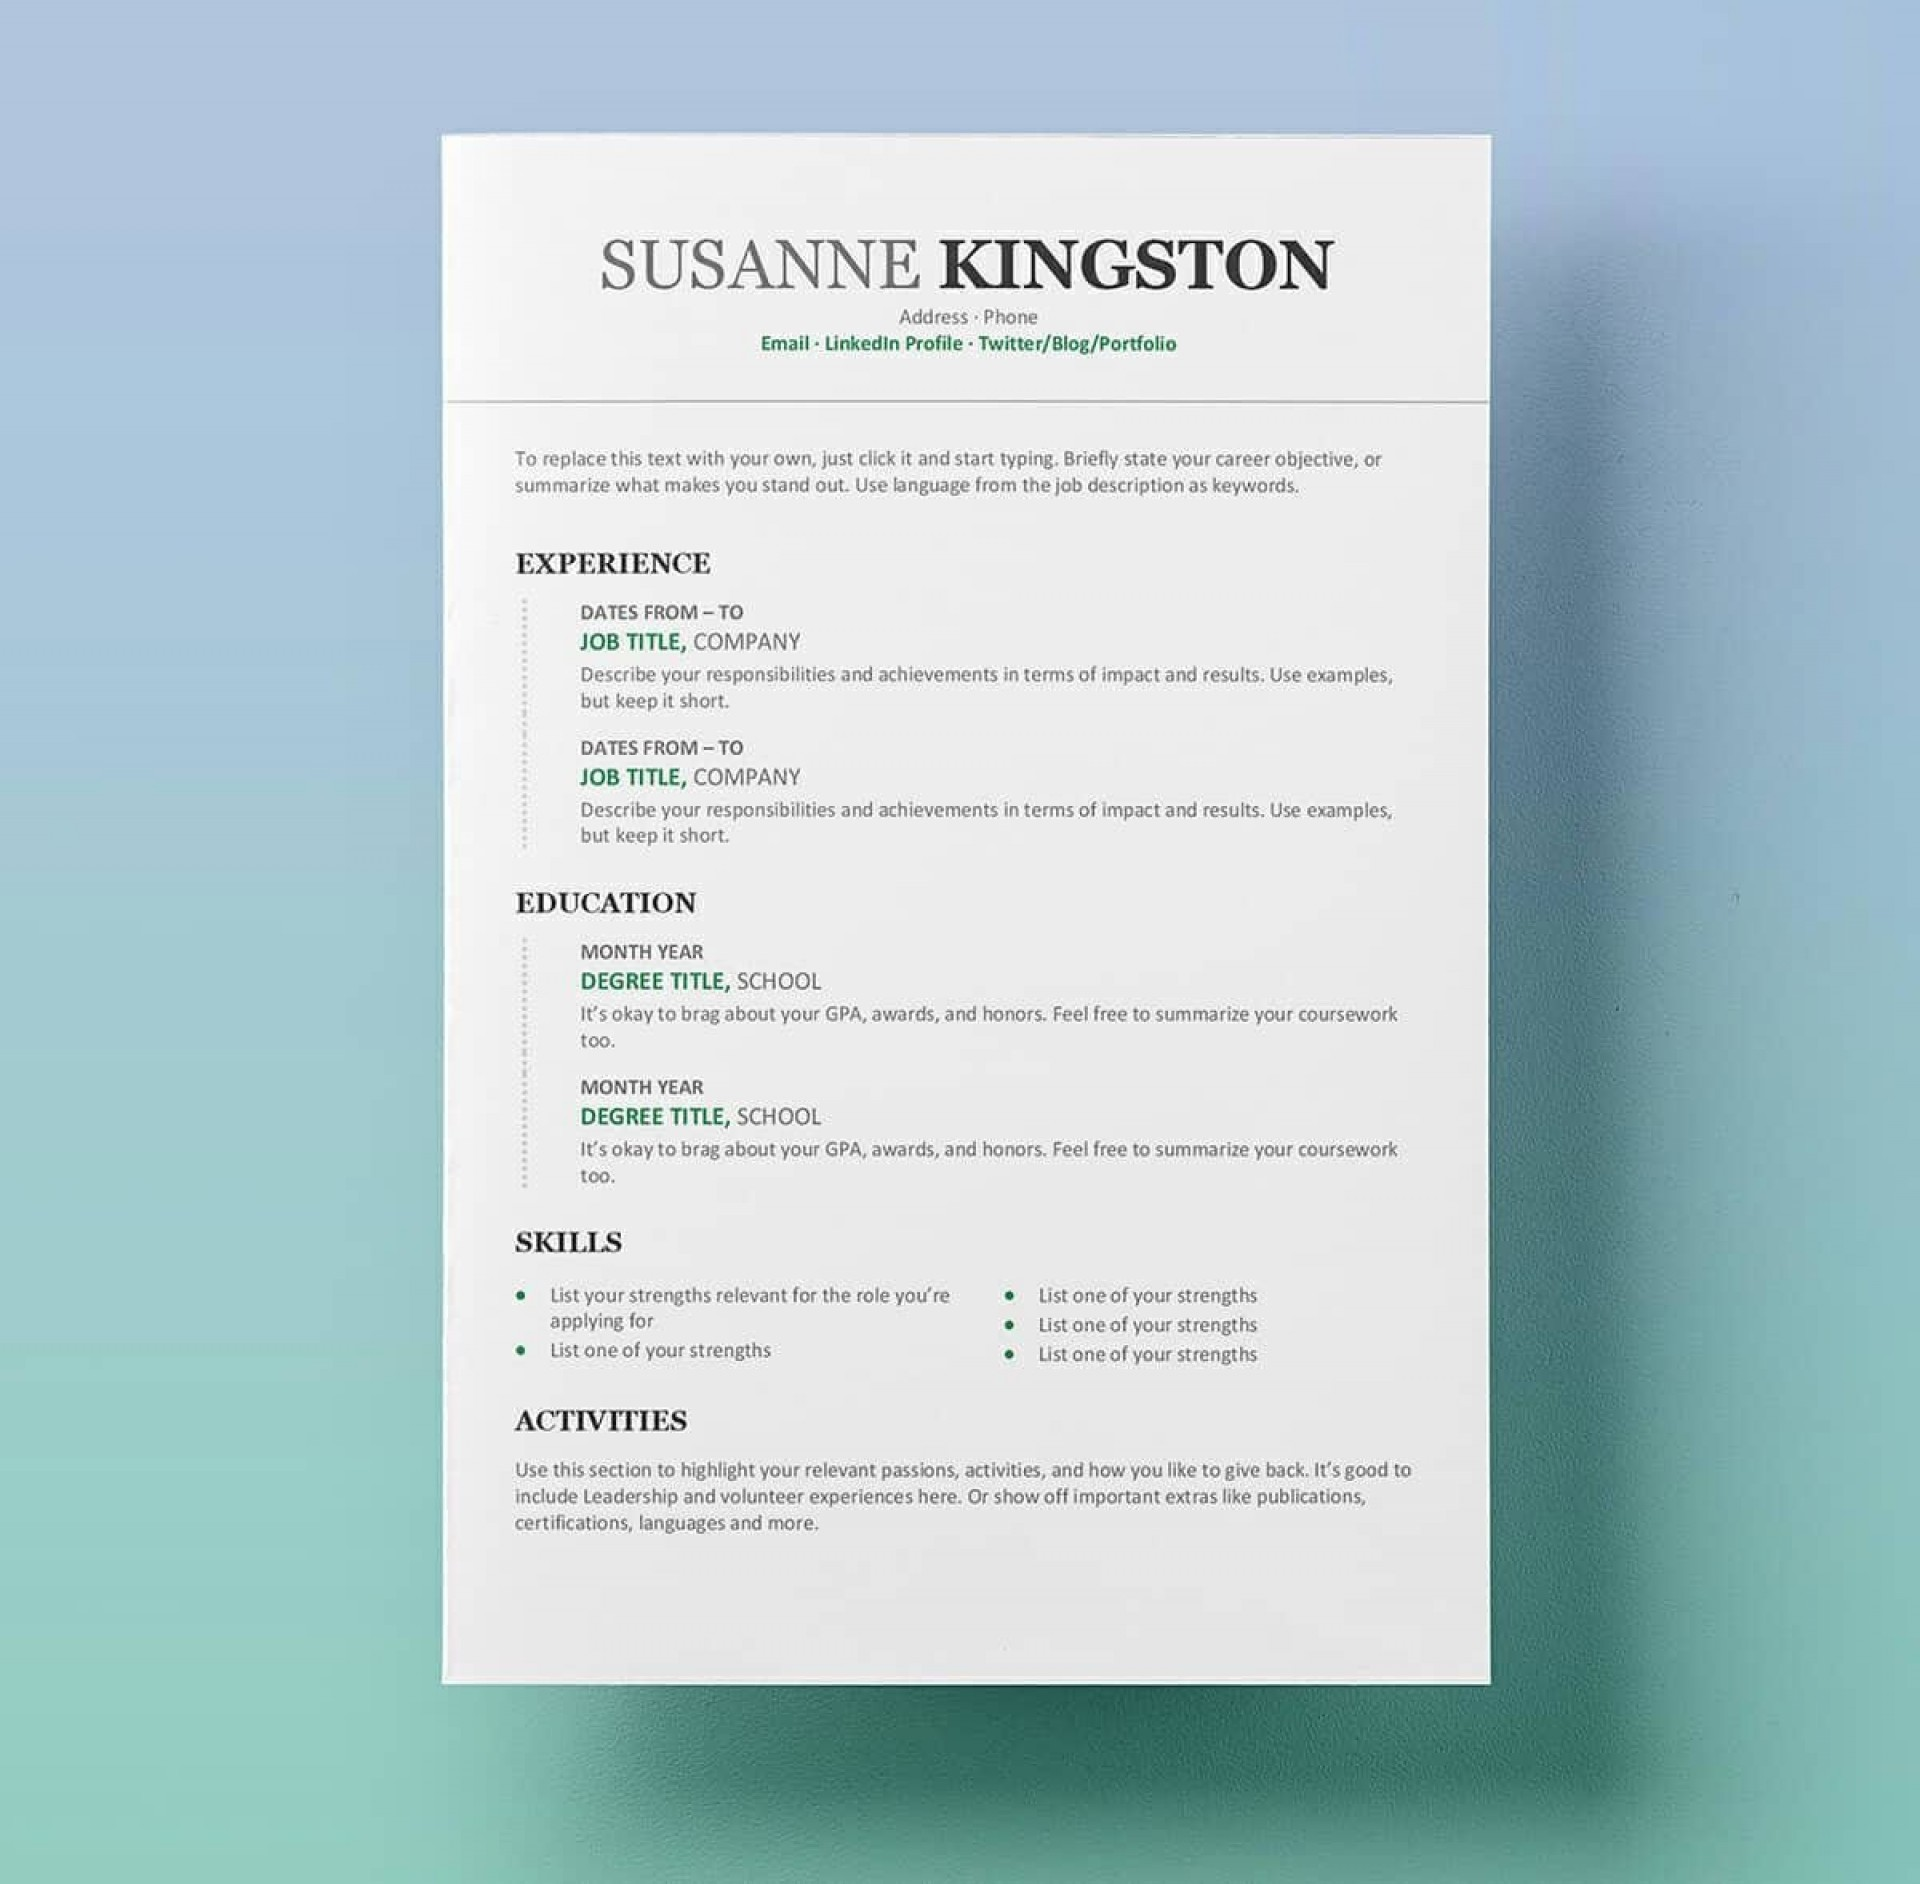 008 Dreaded Word Cv Template Free Download Example  2020 Design Document For Student1920